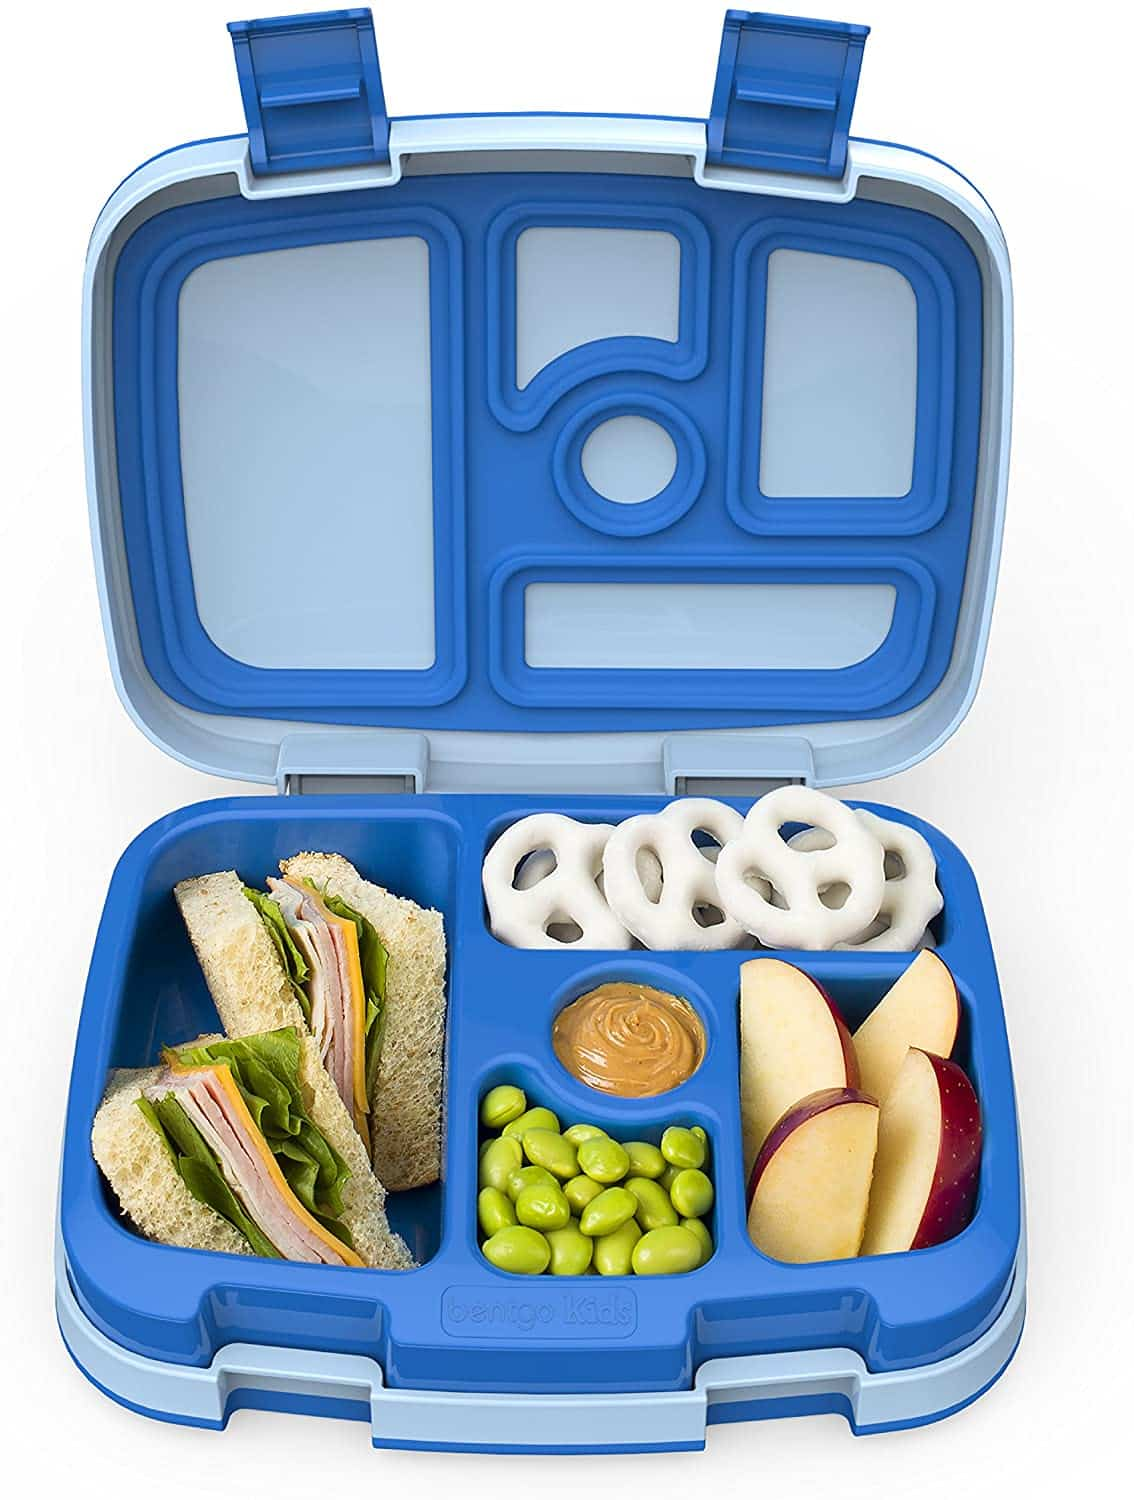 Childrens Lunch bento box